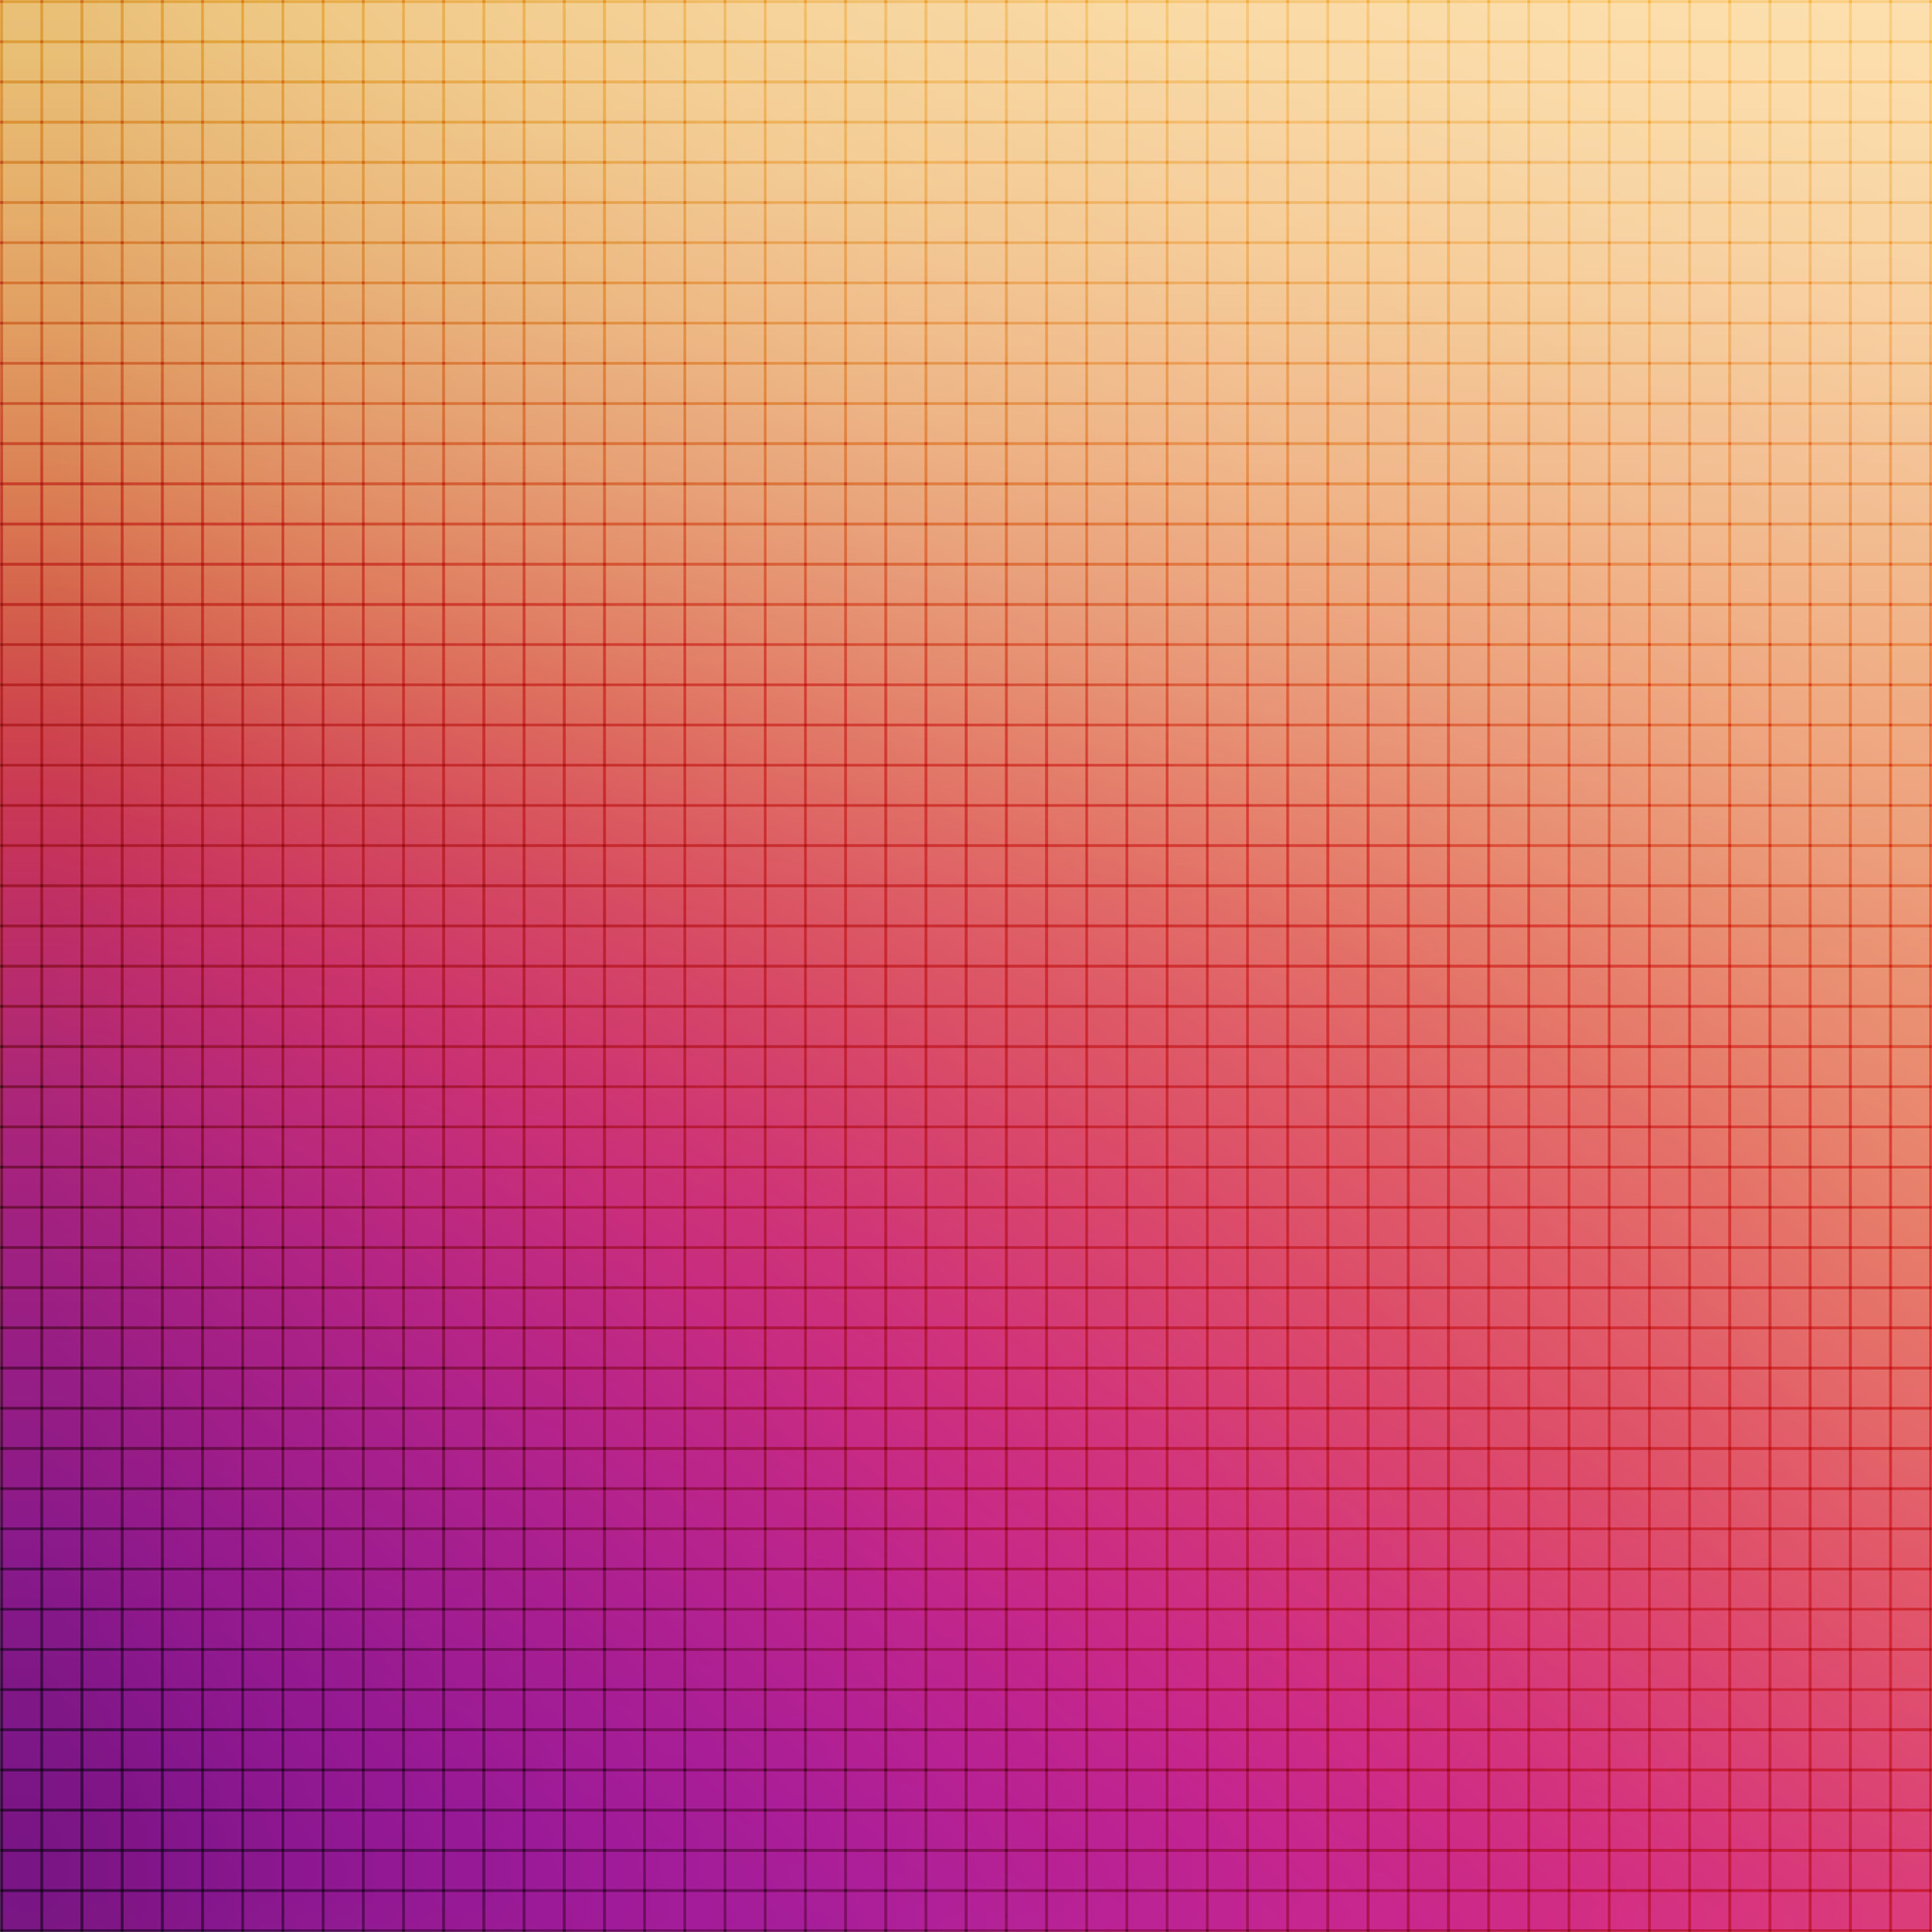 49 Fondos de pantalla para iPad con iOS 7 [Wallpapers iPad]